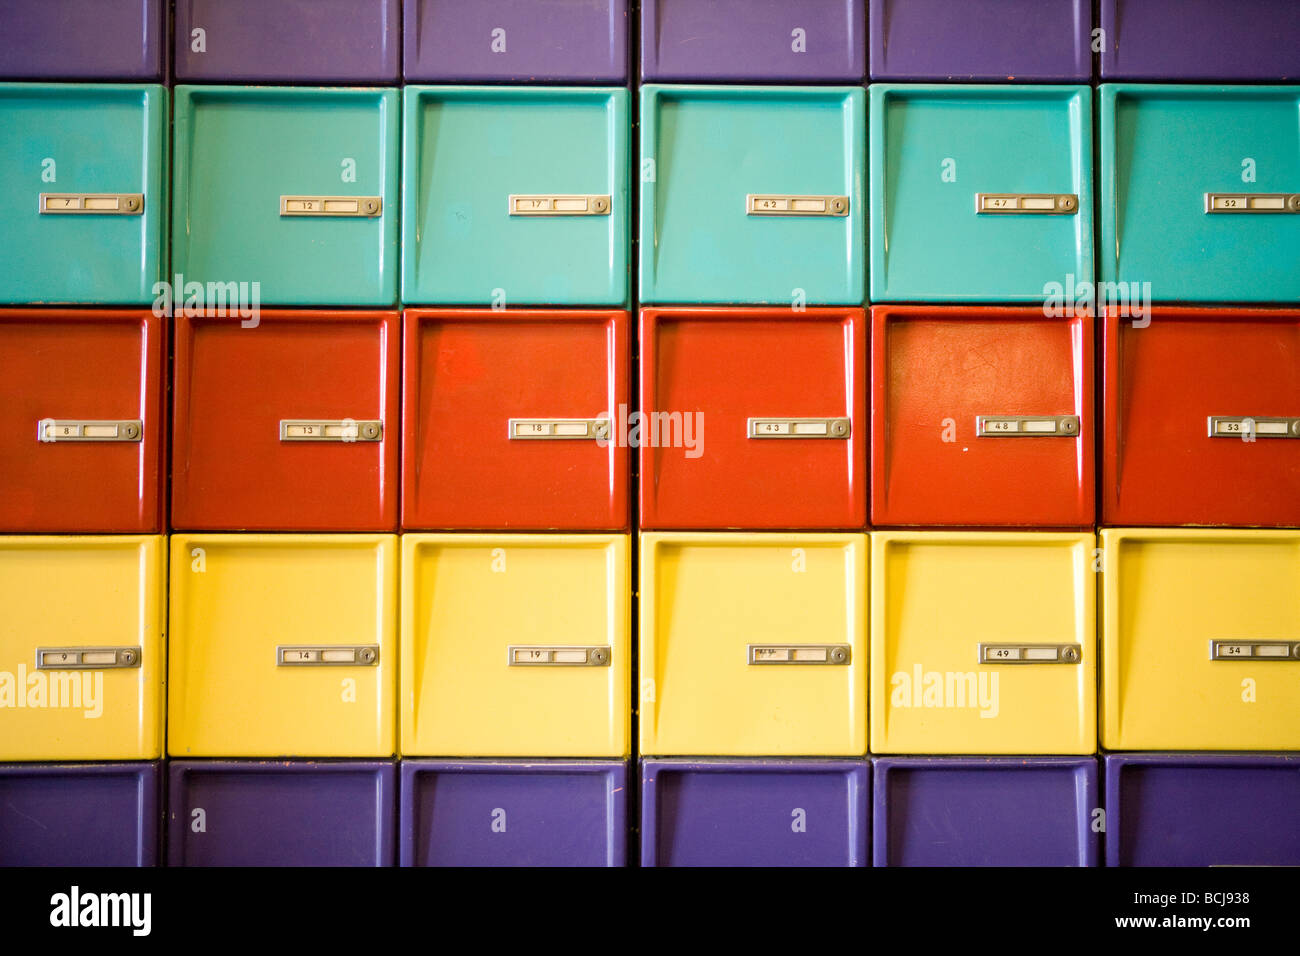 Row of colorful lockers at bowling alley - Stock Image